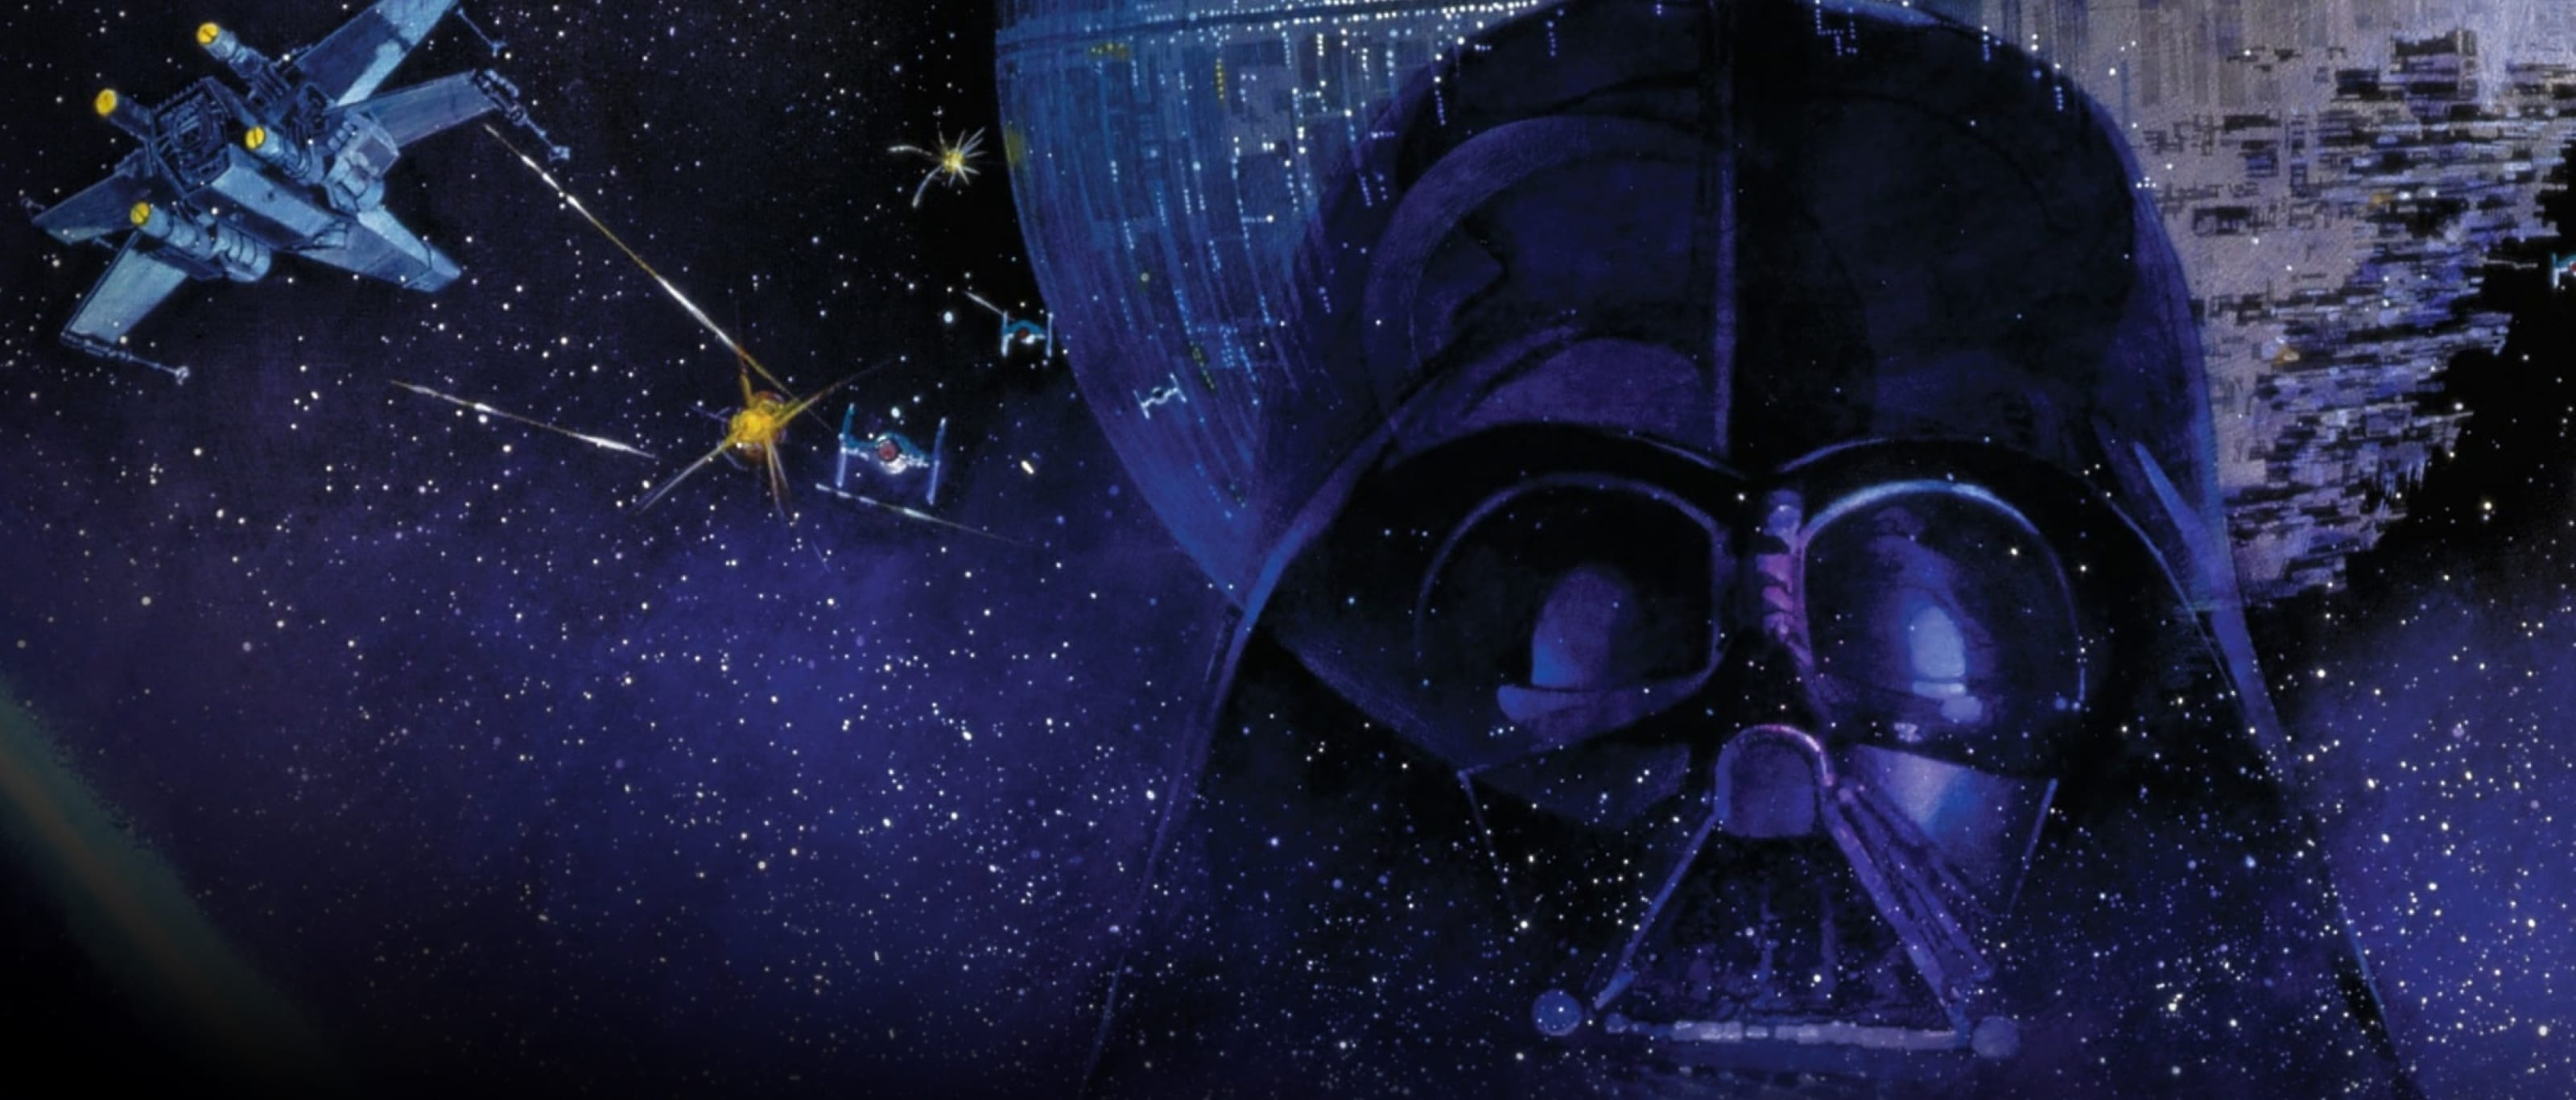 Book tickets with Disney Tickets for Star Wars: Return of The Jedi In Concert - On Tour